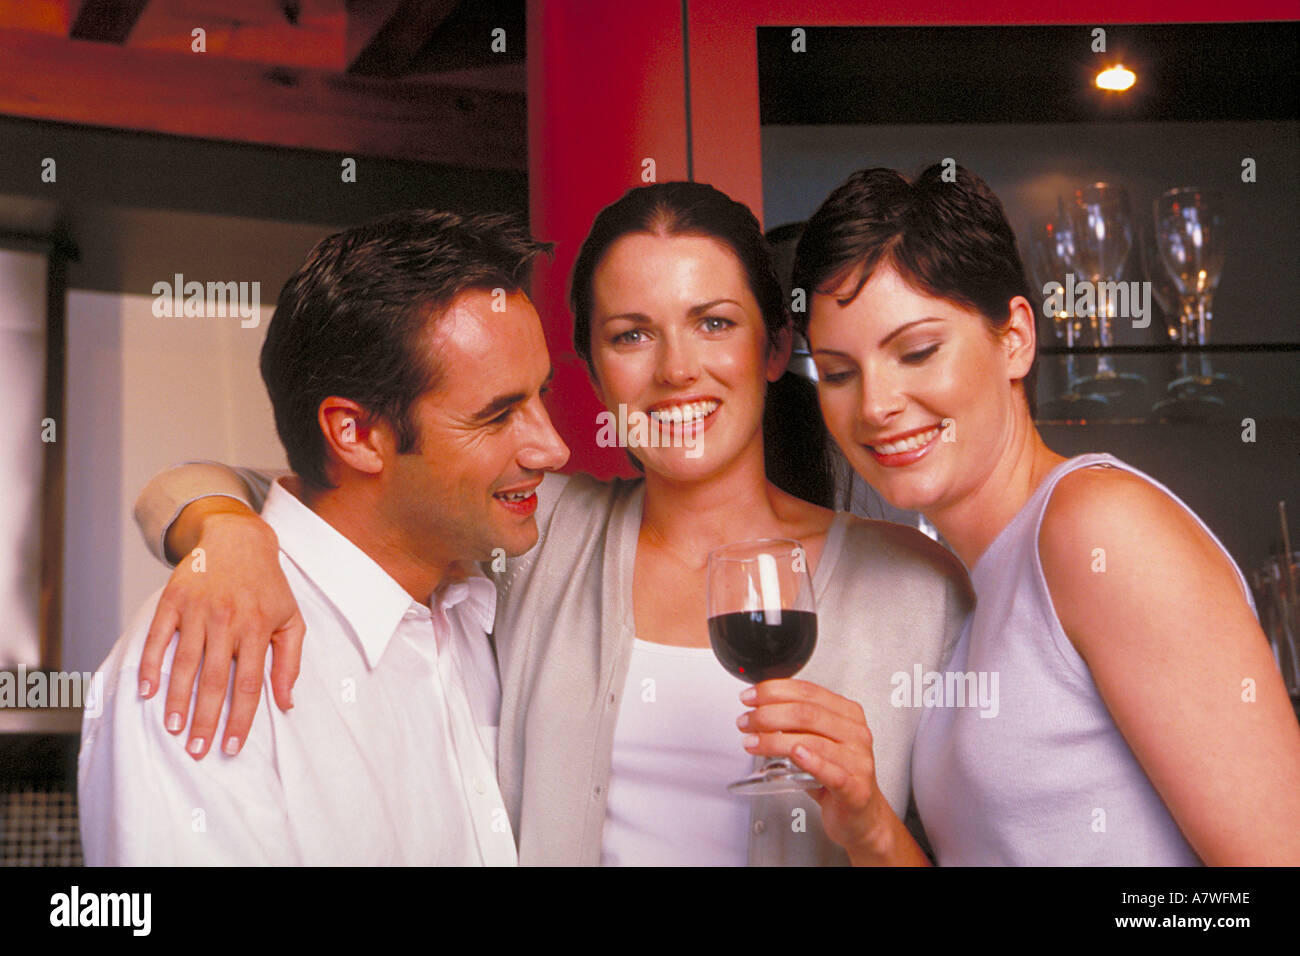 portrait of a group of two young women and one man standing in the kitchen drinking wine - Stock Image